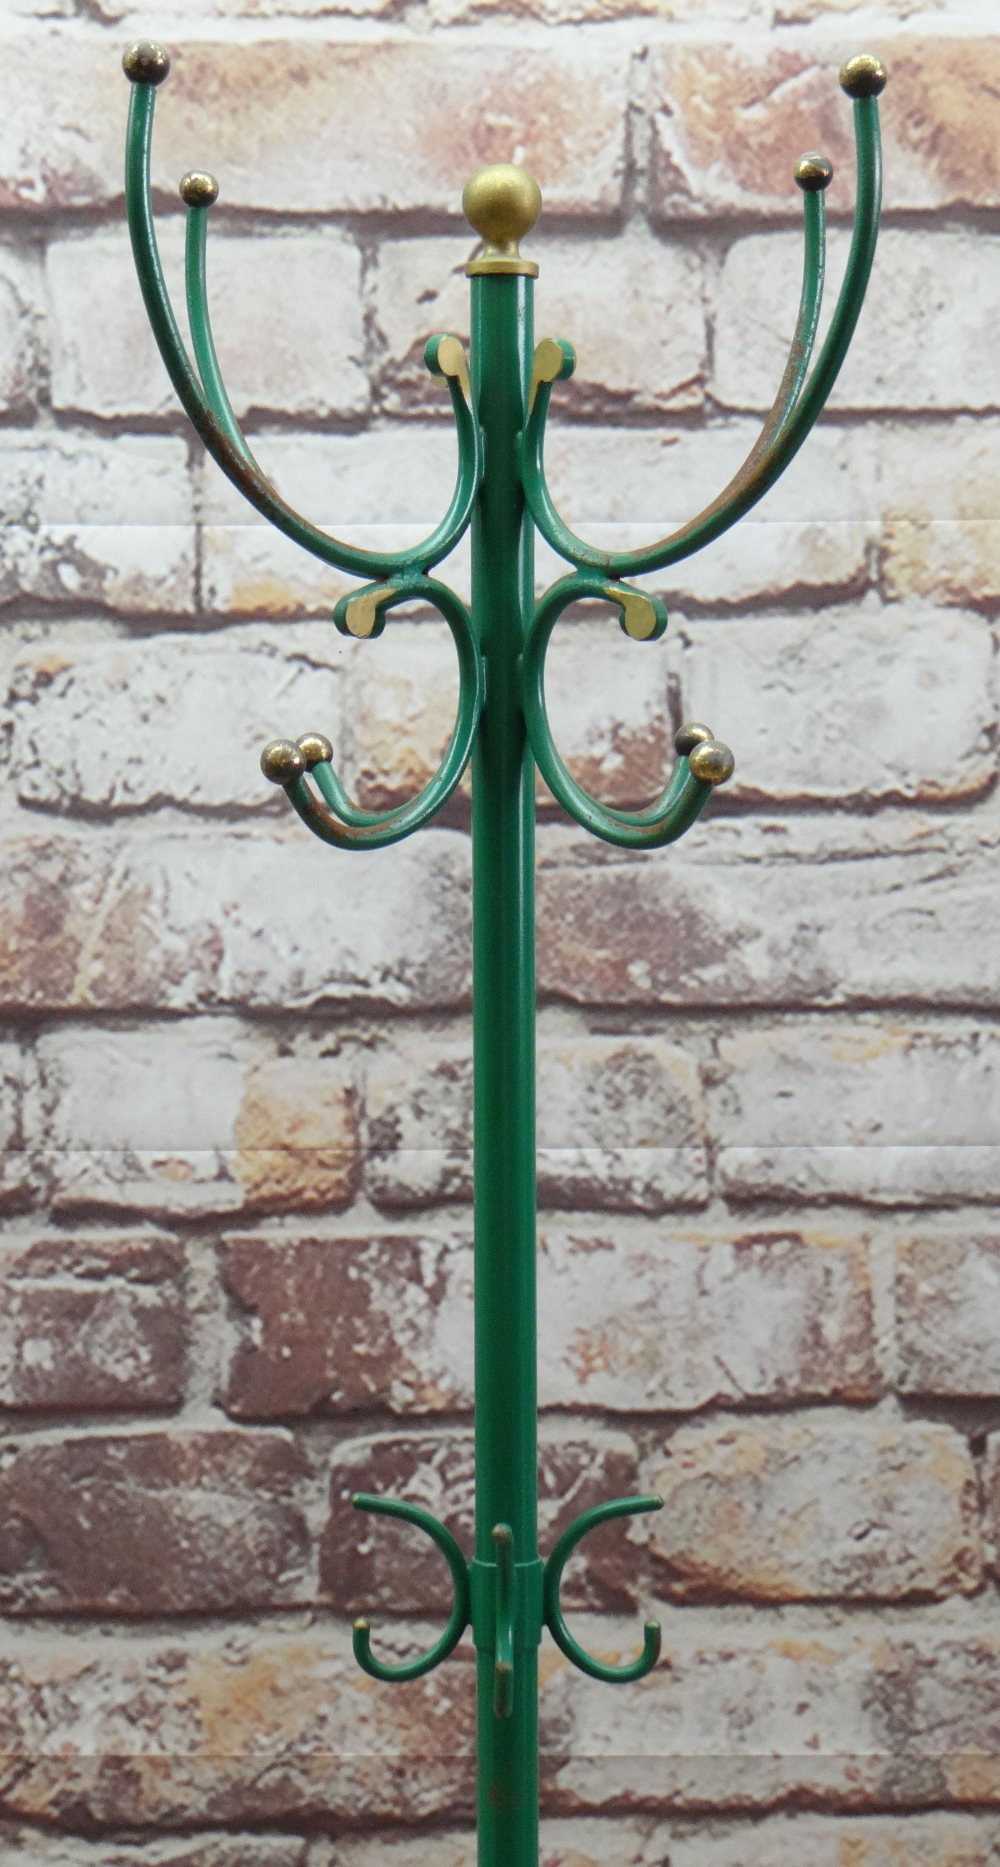 CONTINENTAL PAINTED WROUGHT IRON HAT STAND with gilt ball finials, later gold and green paint, - Image 3 of 3